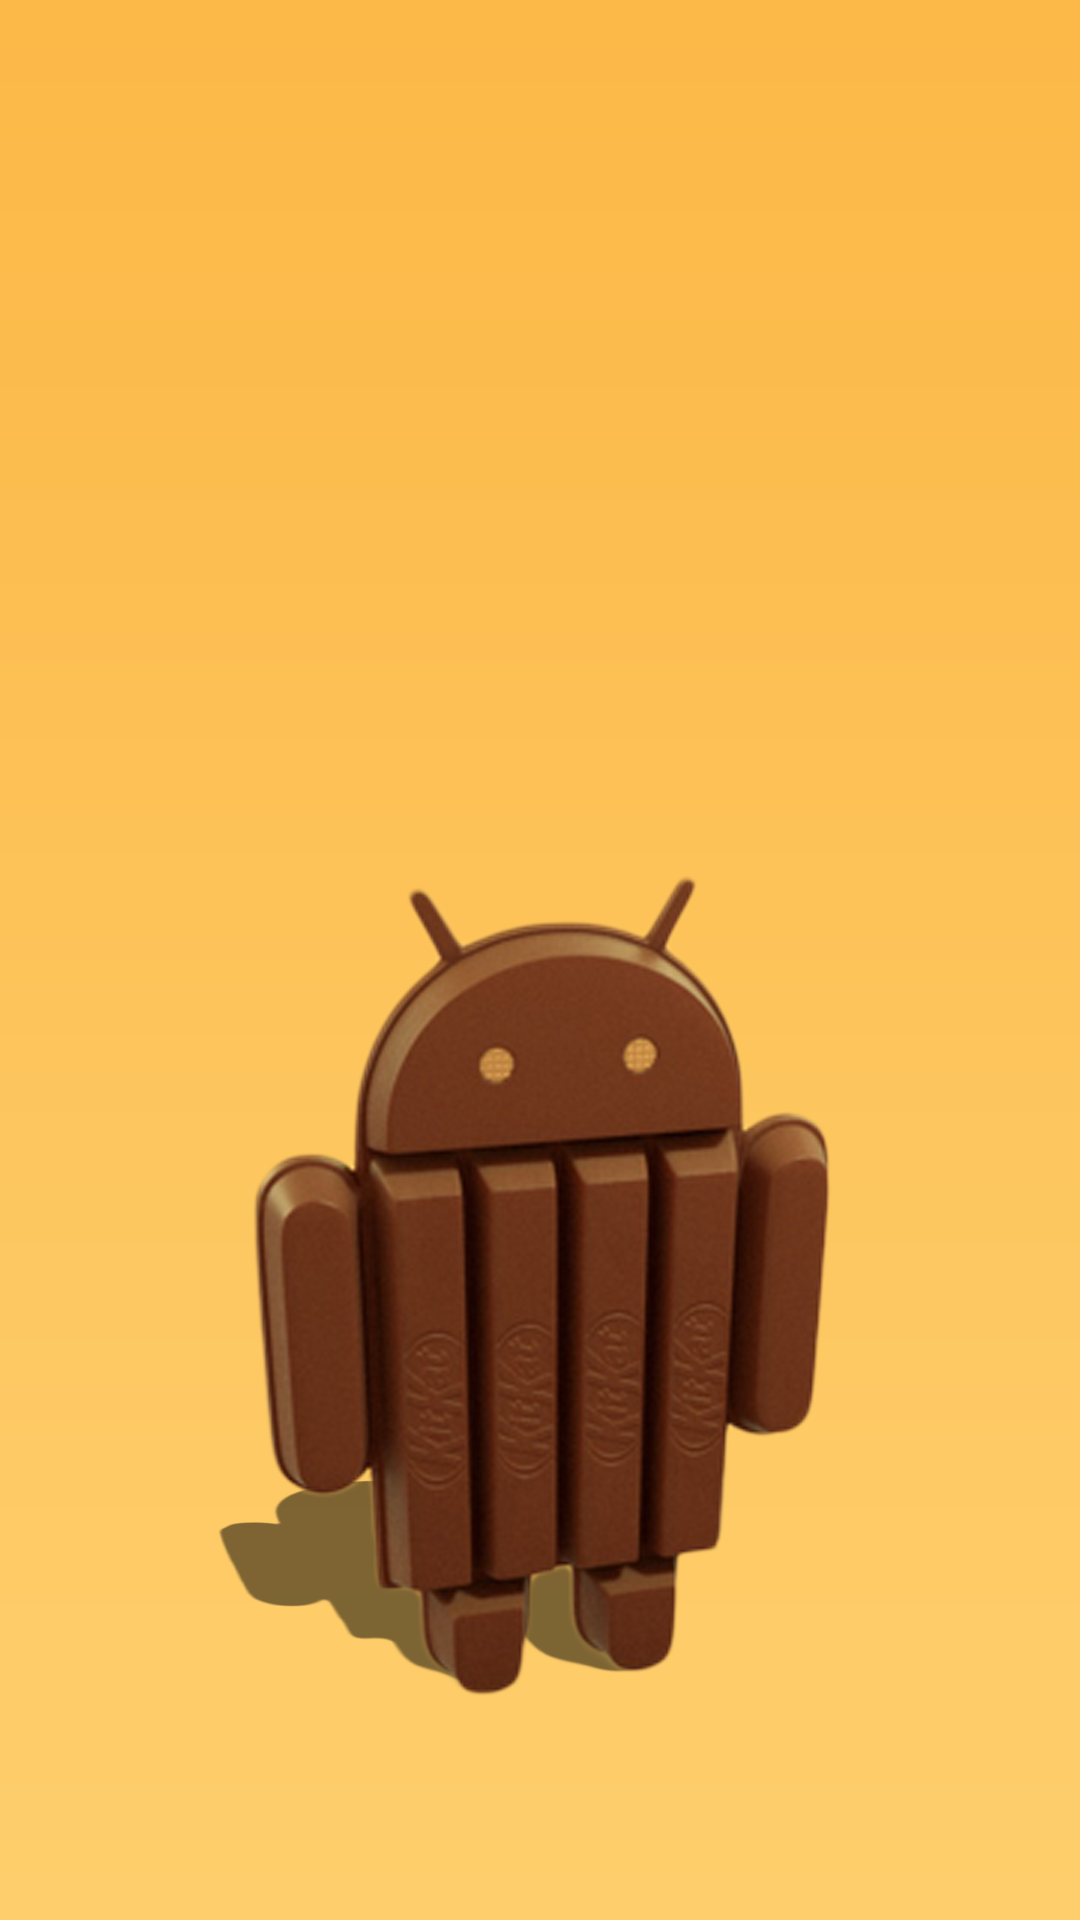 Android kitkat smartphone wallpapers hd getphotos android kitkat smartphone wallpapers hd voltagebd Image collections